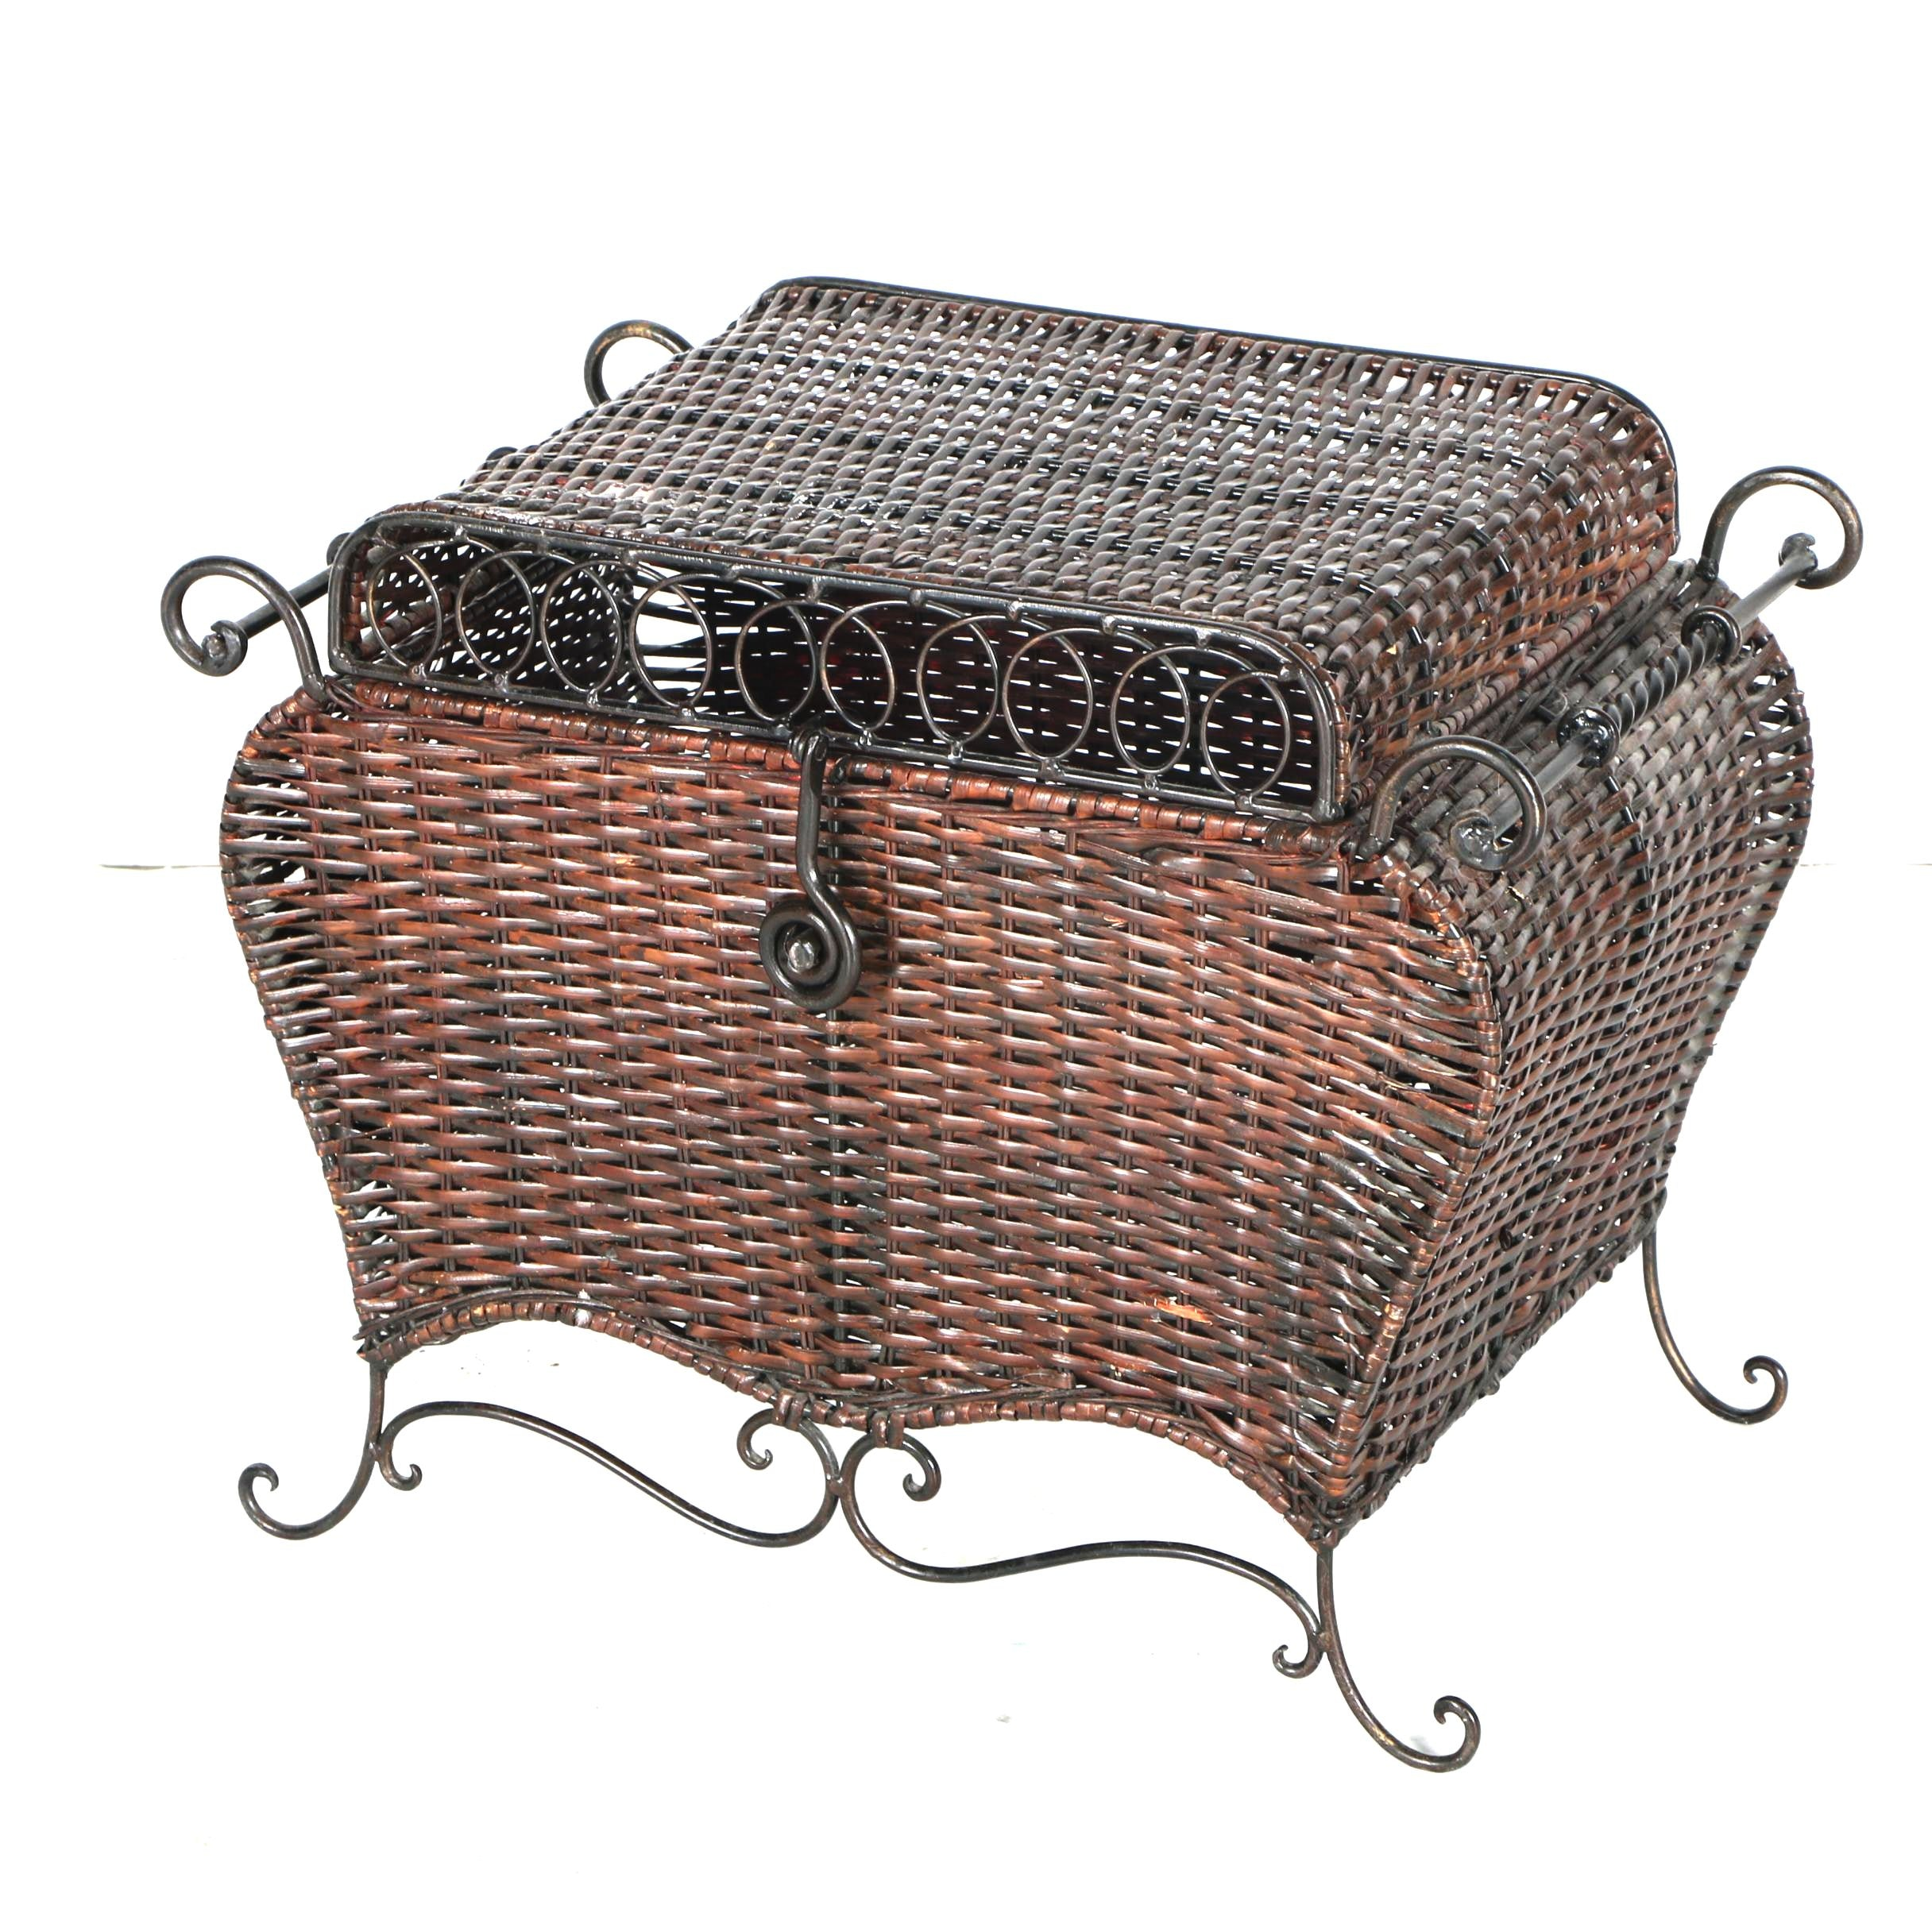 Contemporary Wicker and Metal Storage Trunk